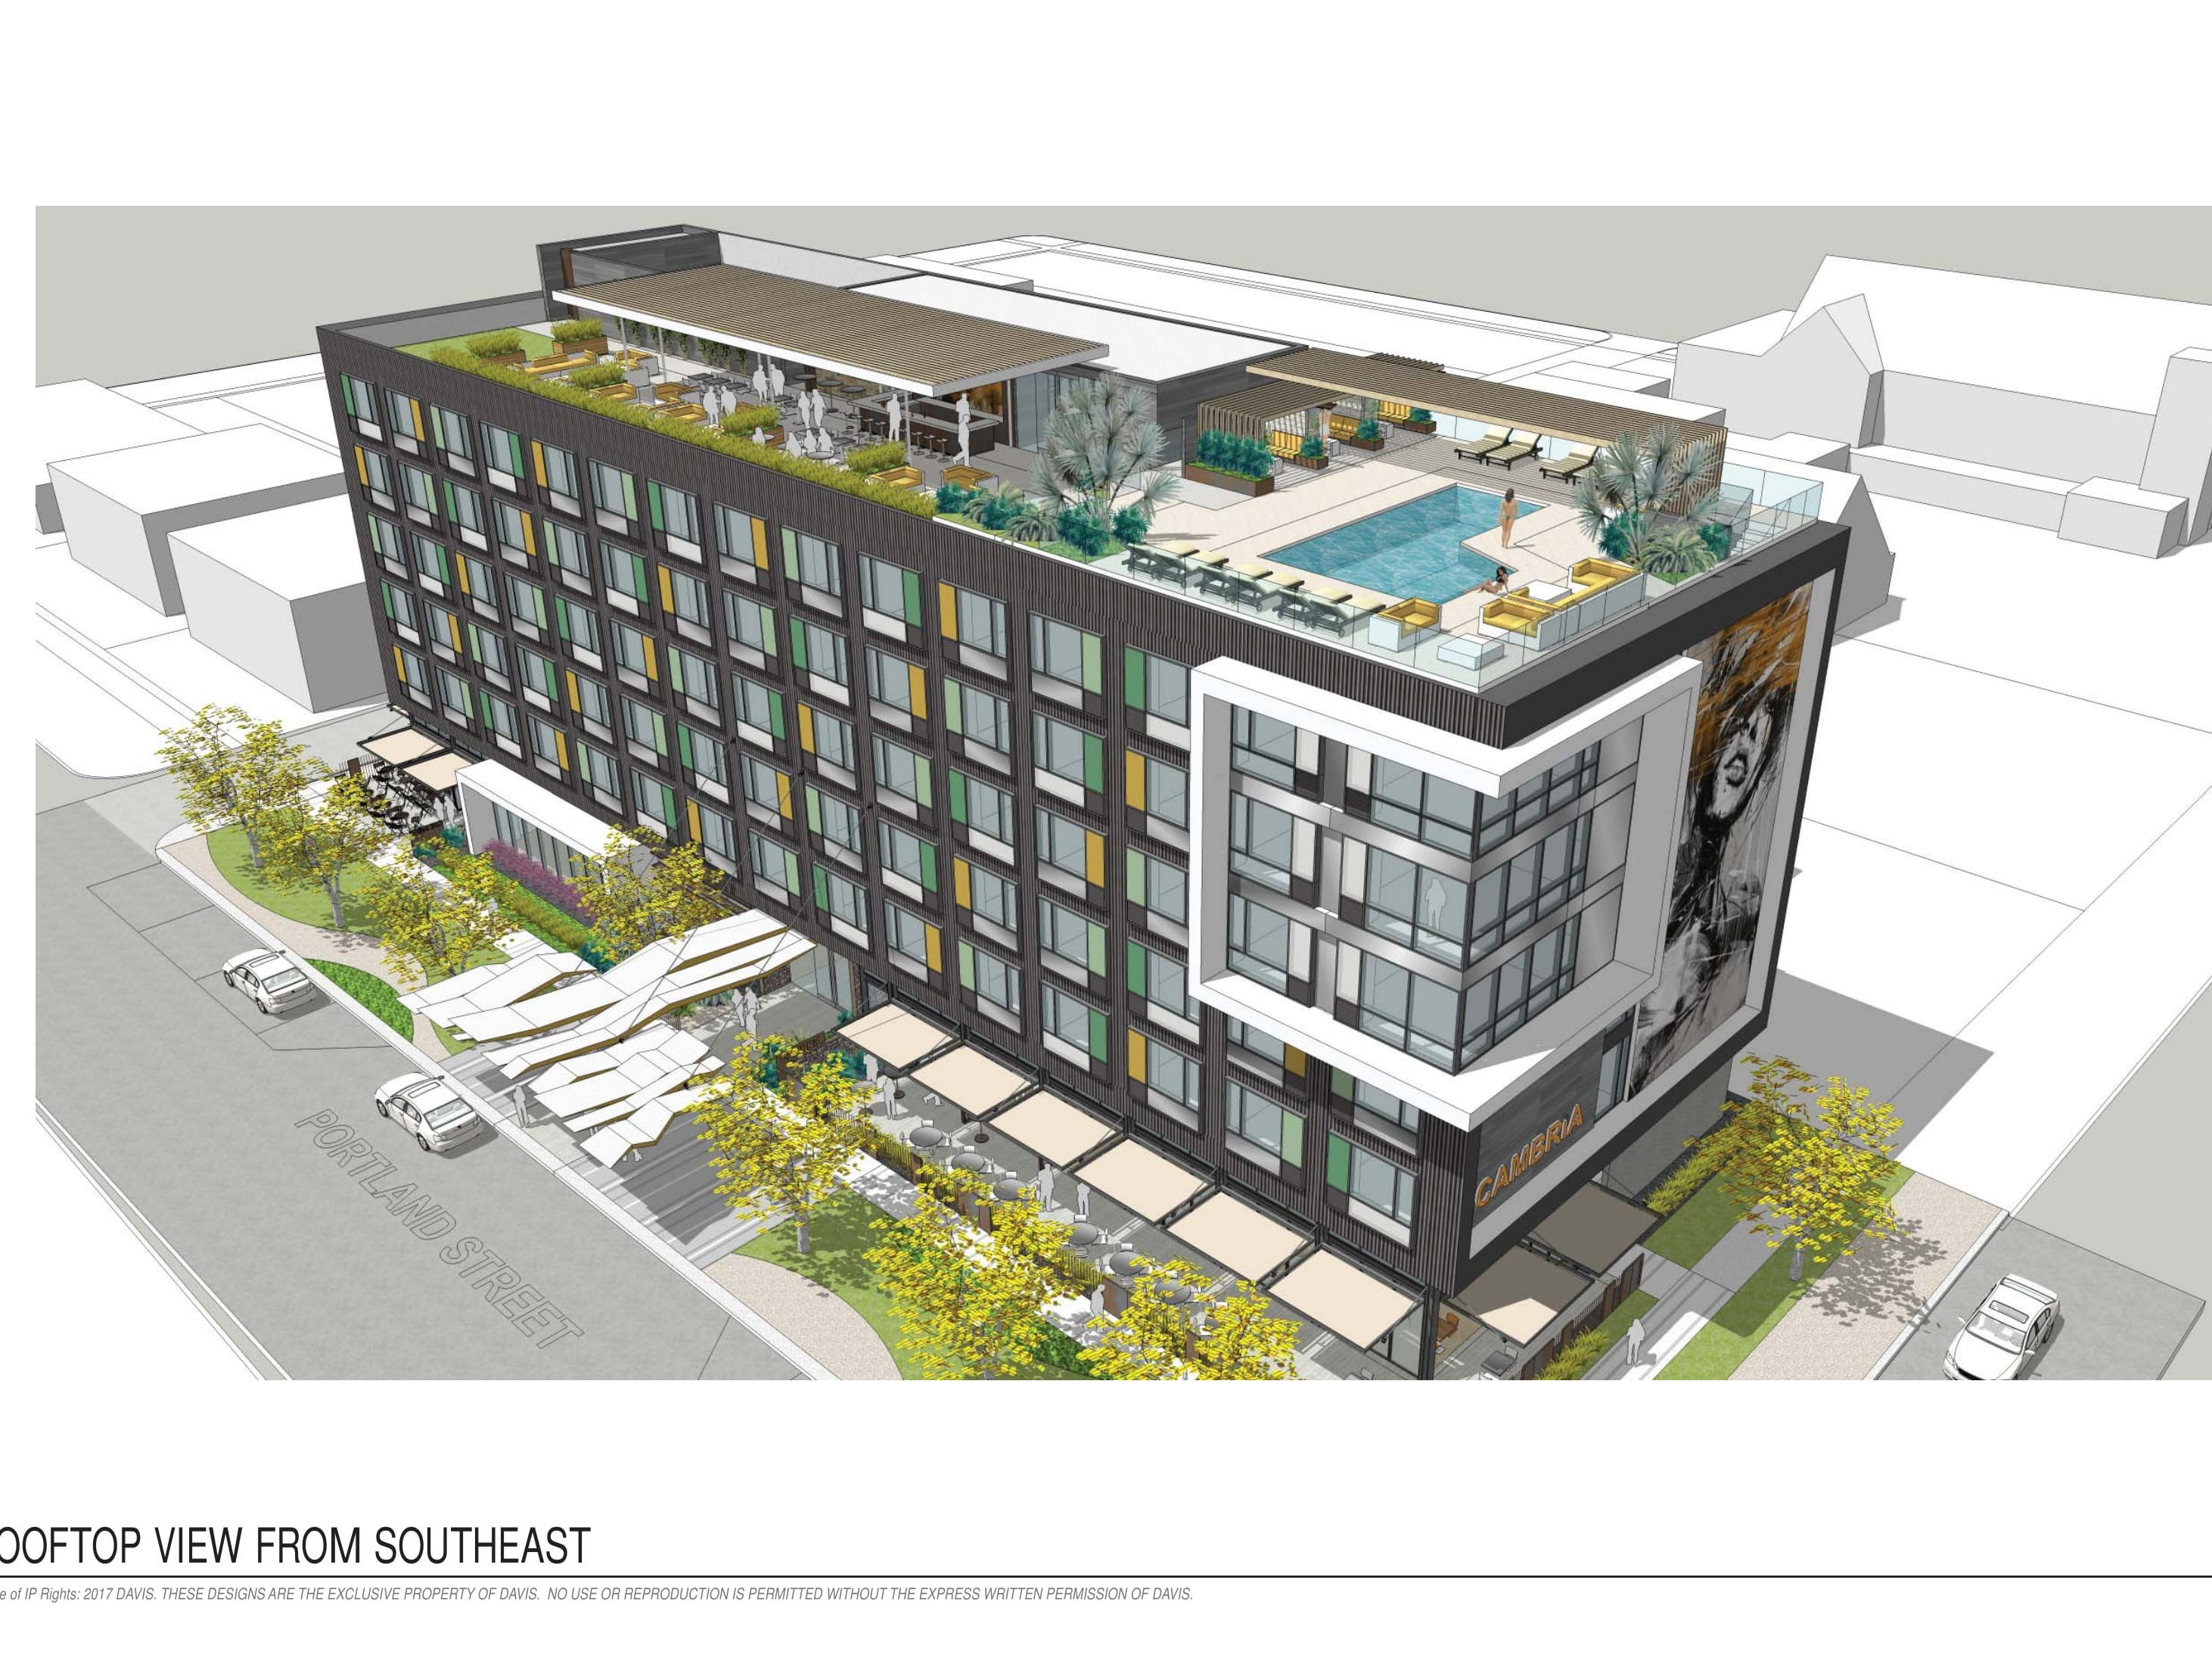 Renderings of the rooftop on the seven-story Cambria hotel going up in downtown Phoenix's Roosevelt Row.